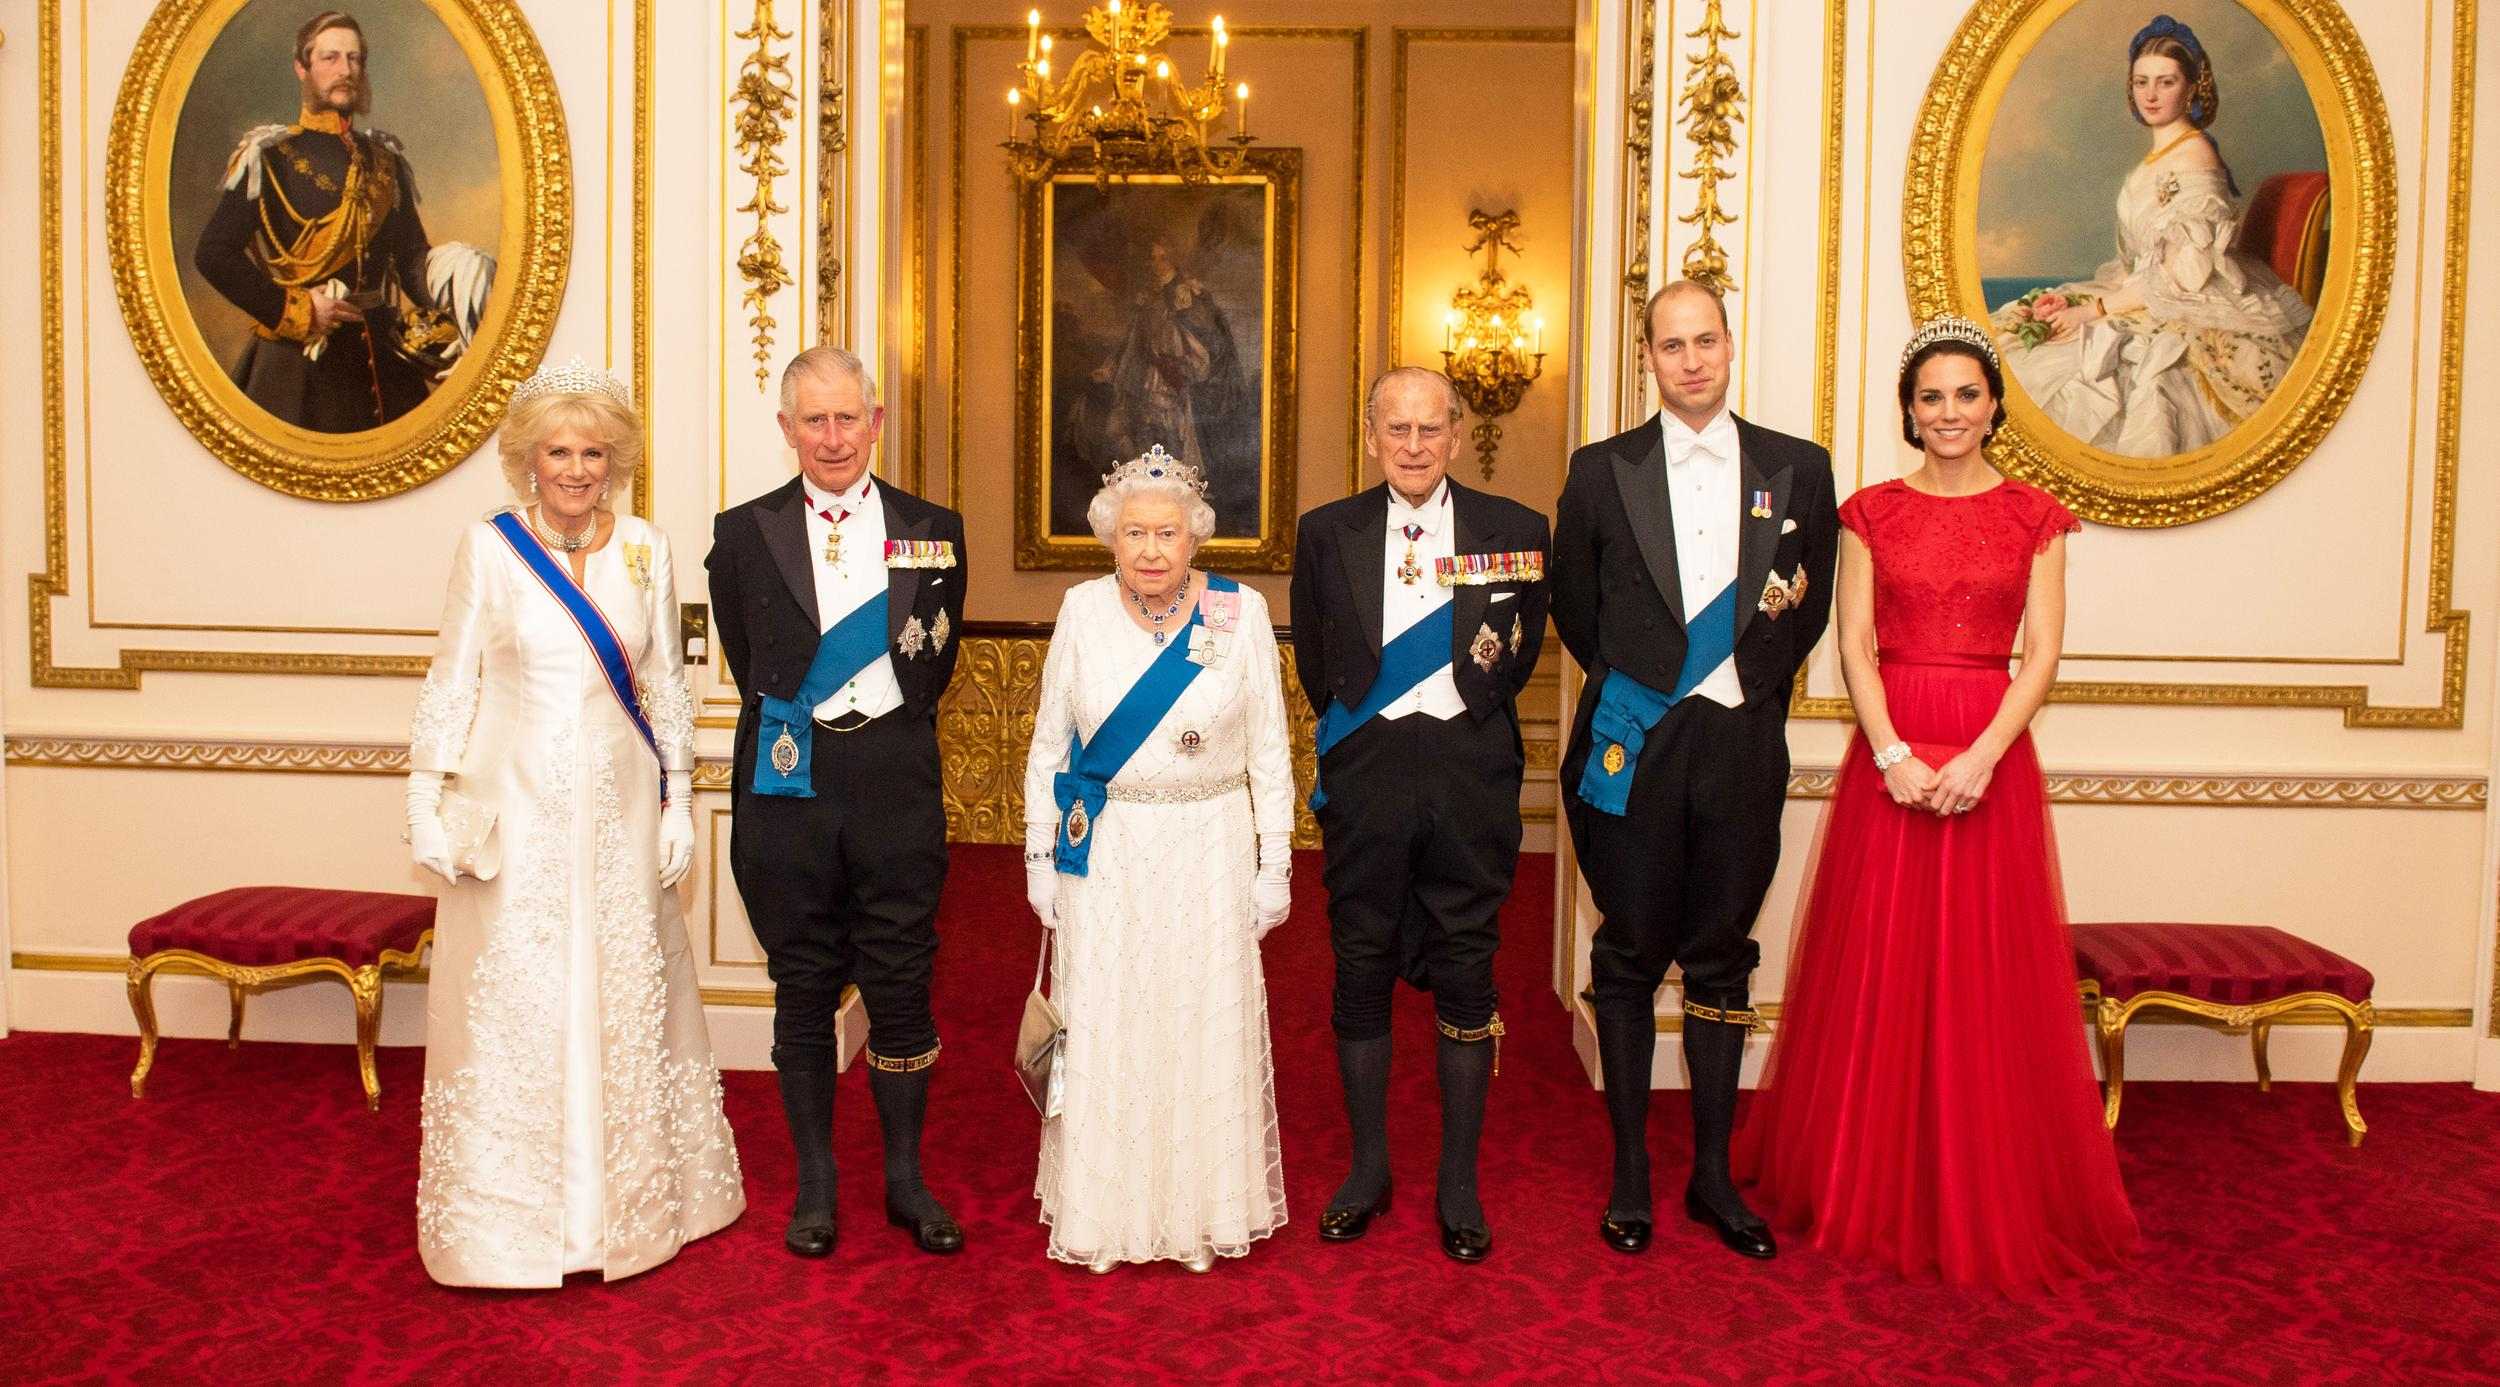 Buckingham Palace Is Getting Refurbished & *This* Royal Is Most the Excited About It